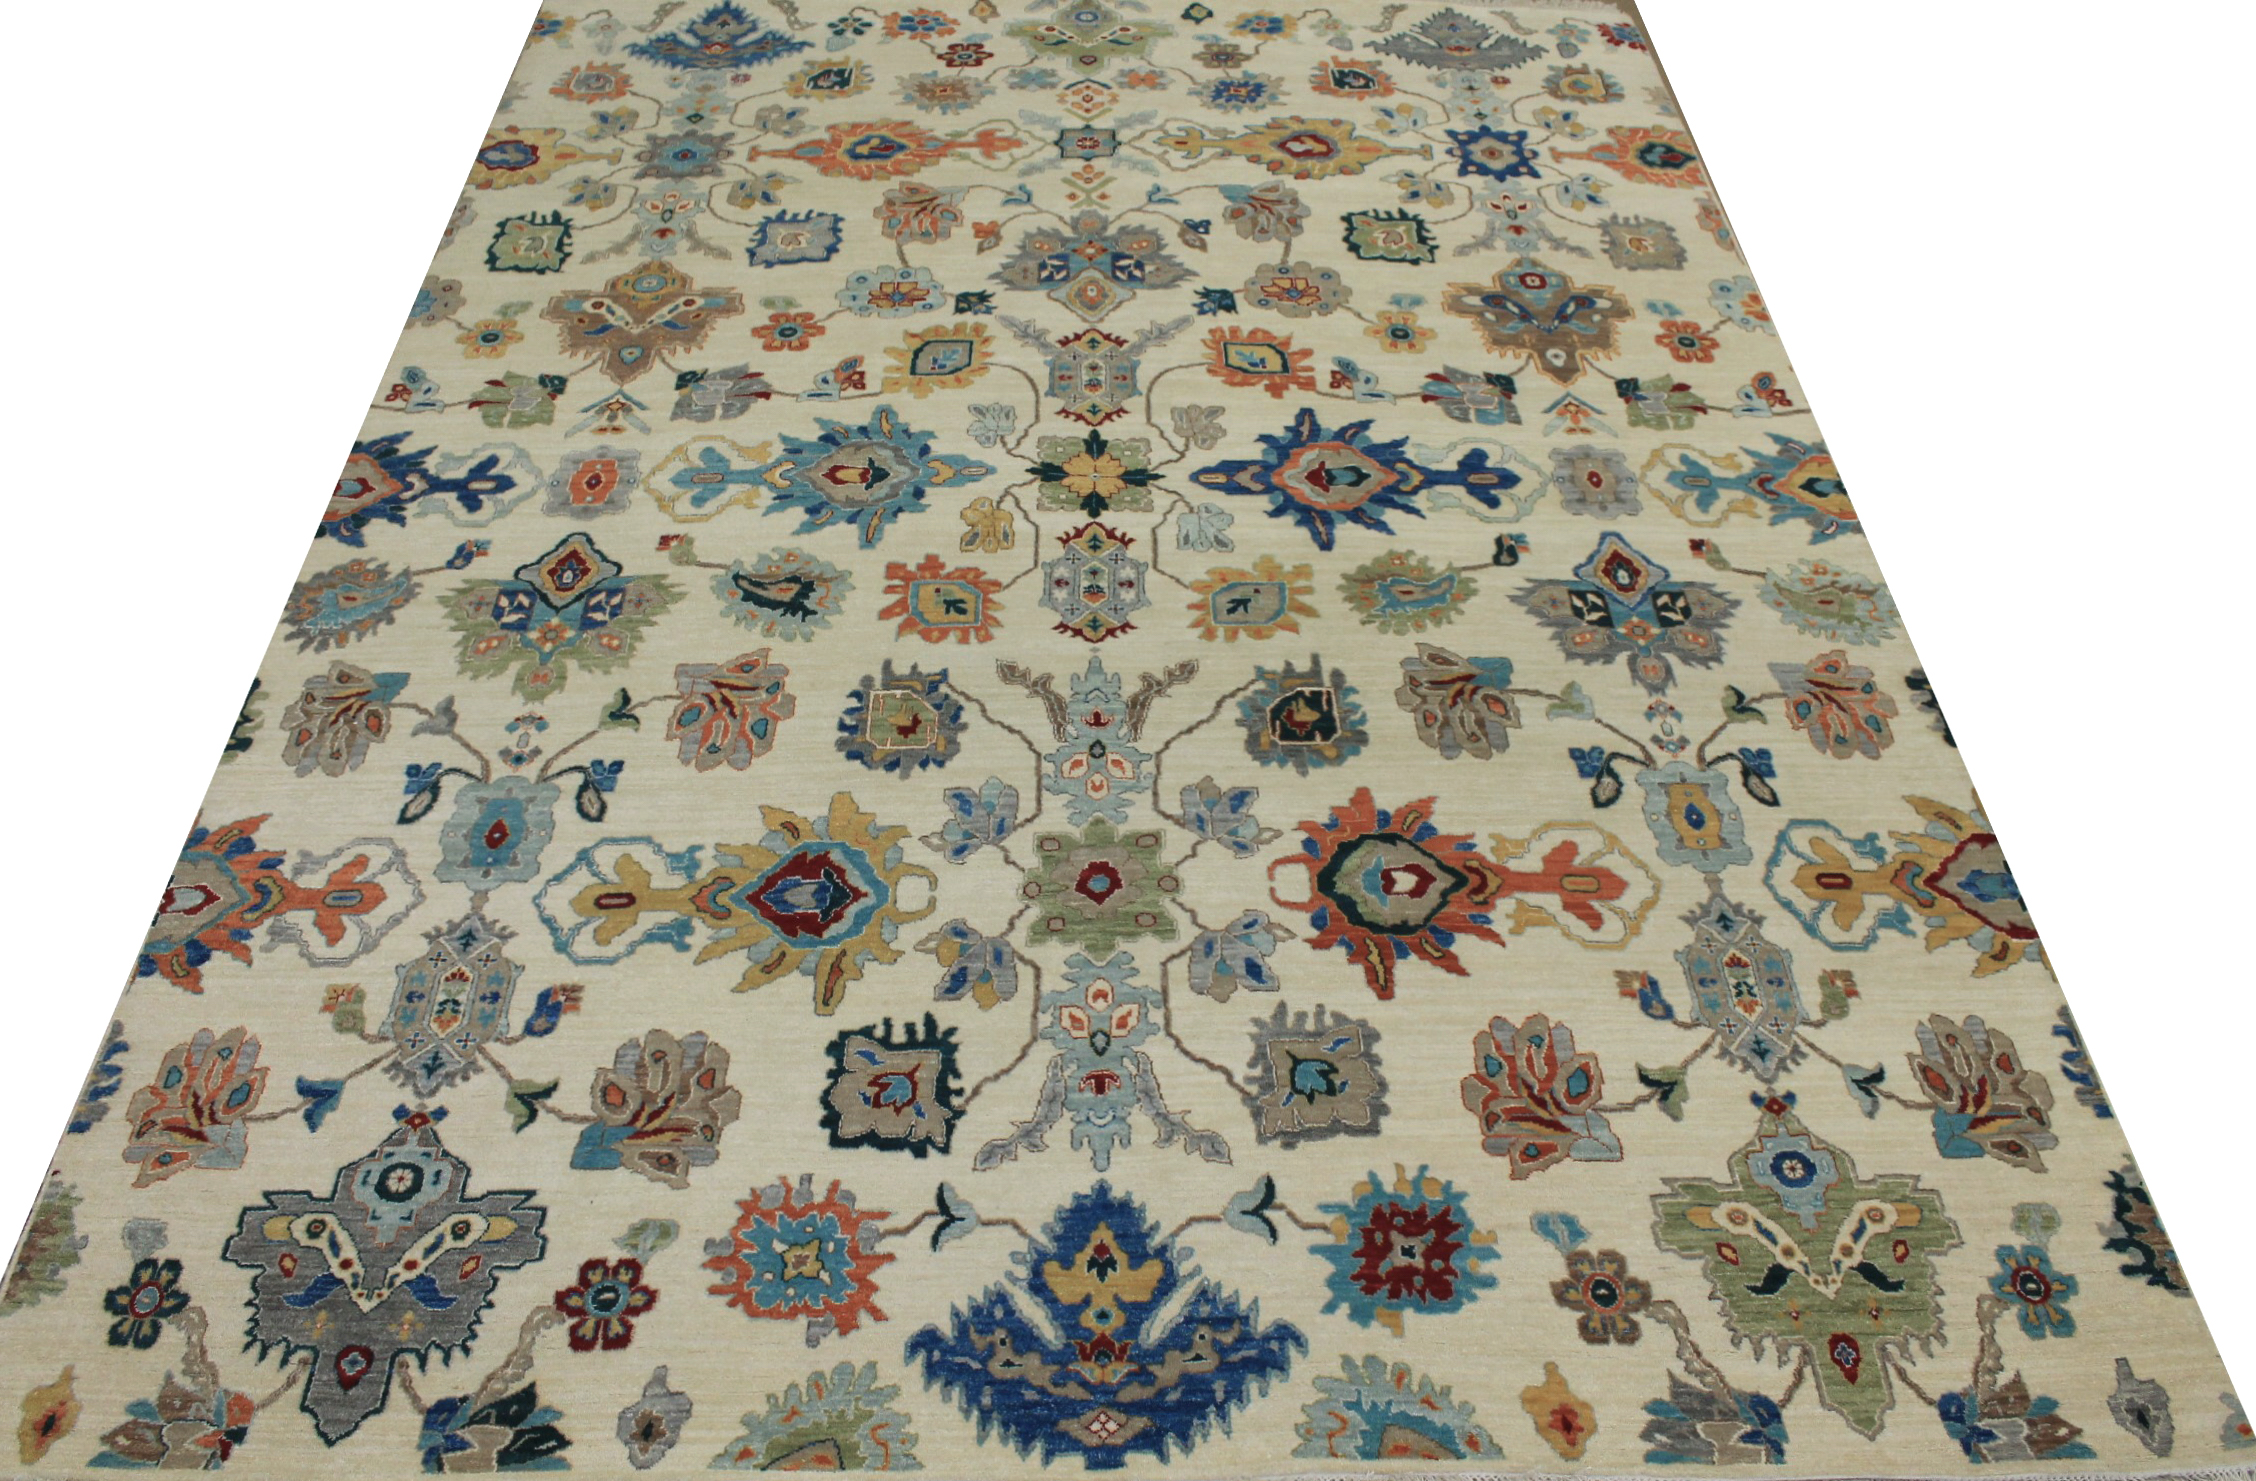 9x12 Traditional Hand Knotted Wool Area Rug - MR024060